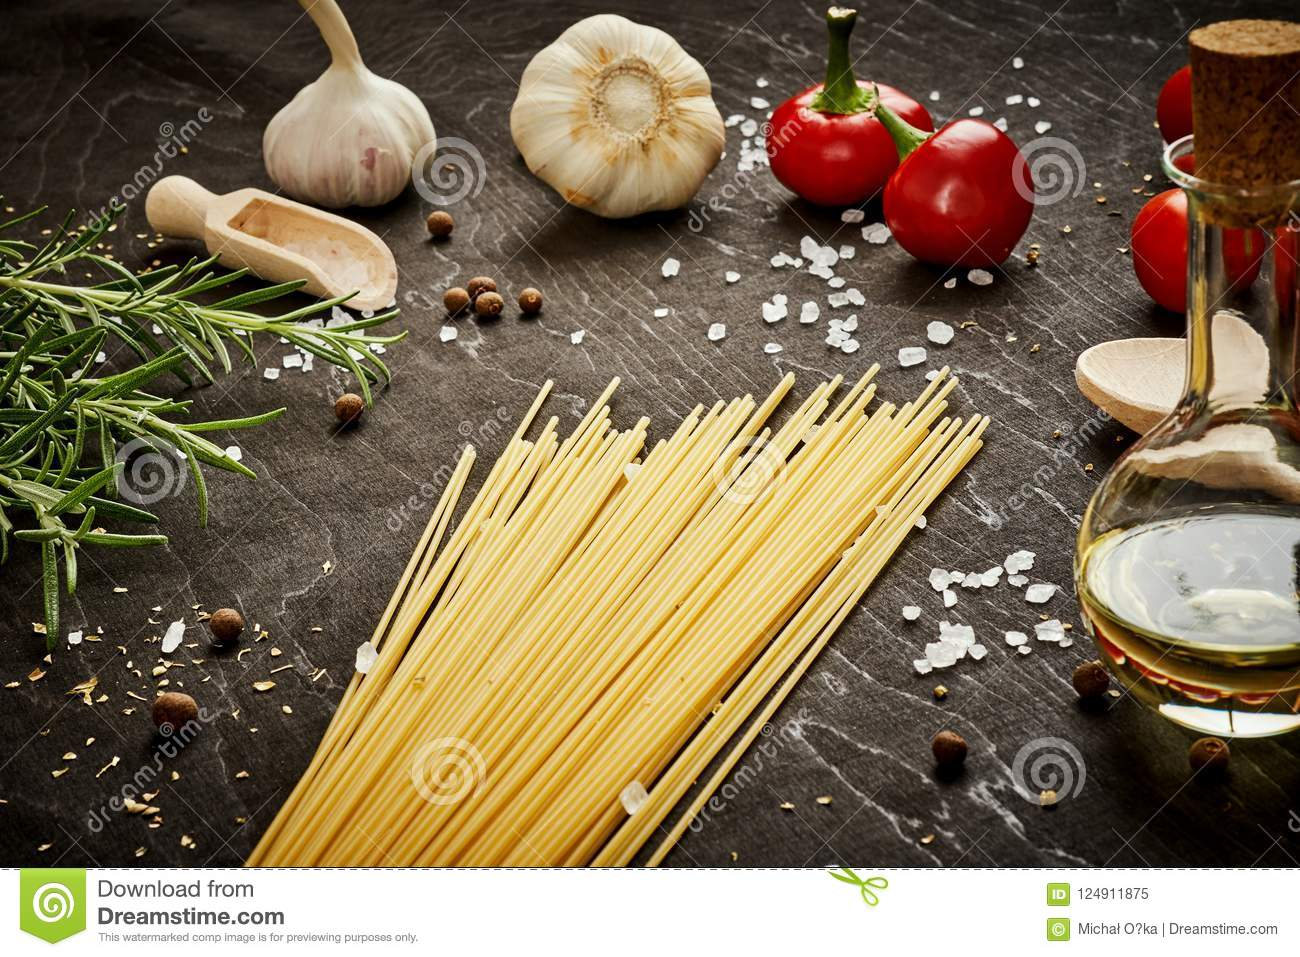 Tomatoes garlic salt olive peppers and pasta on a black table